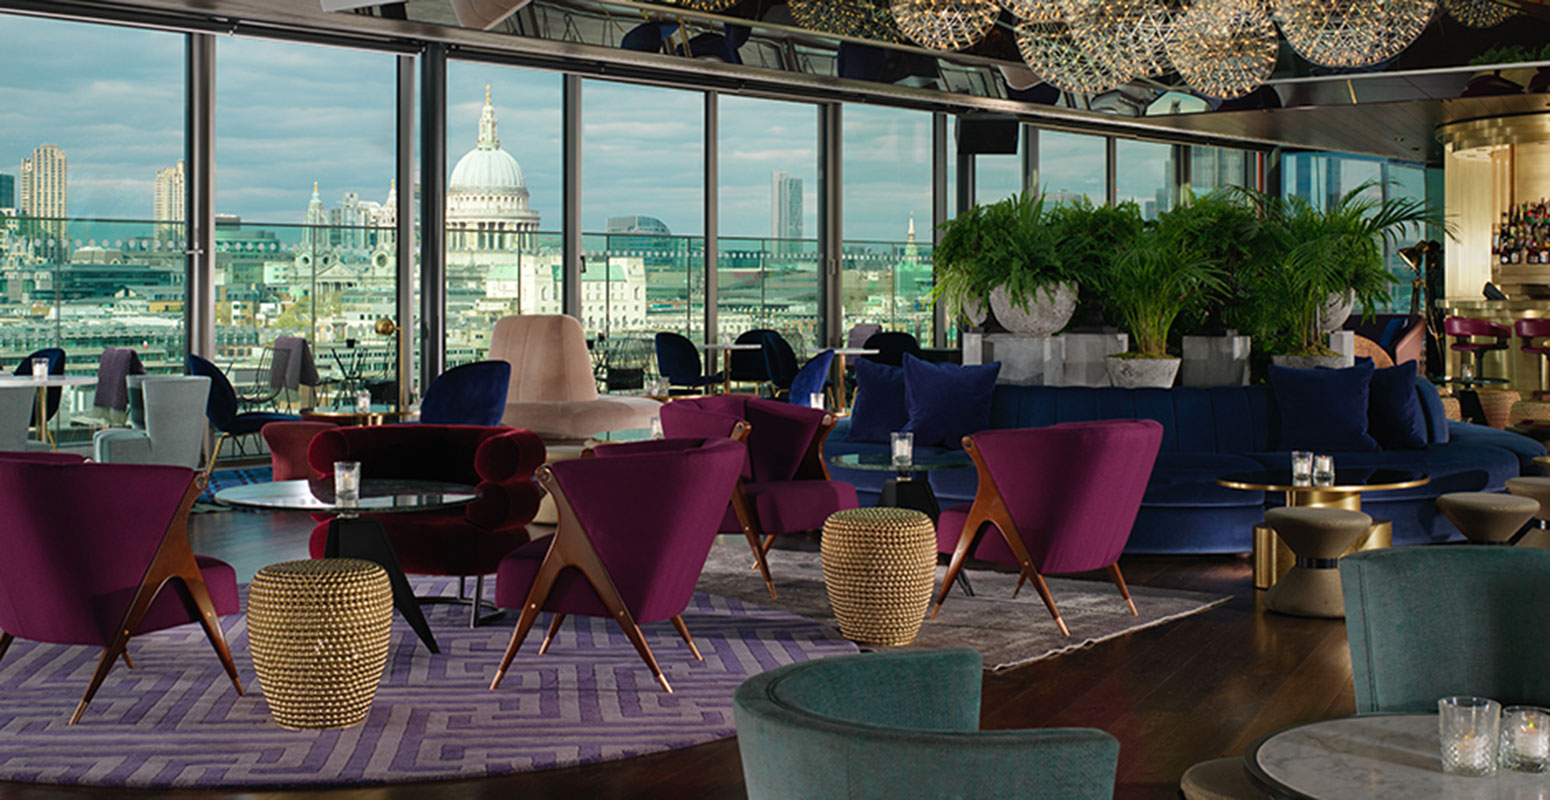 Rooftop bars in London: Rumpus Room